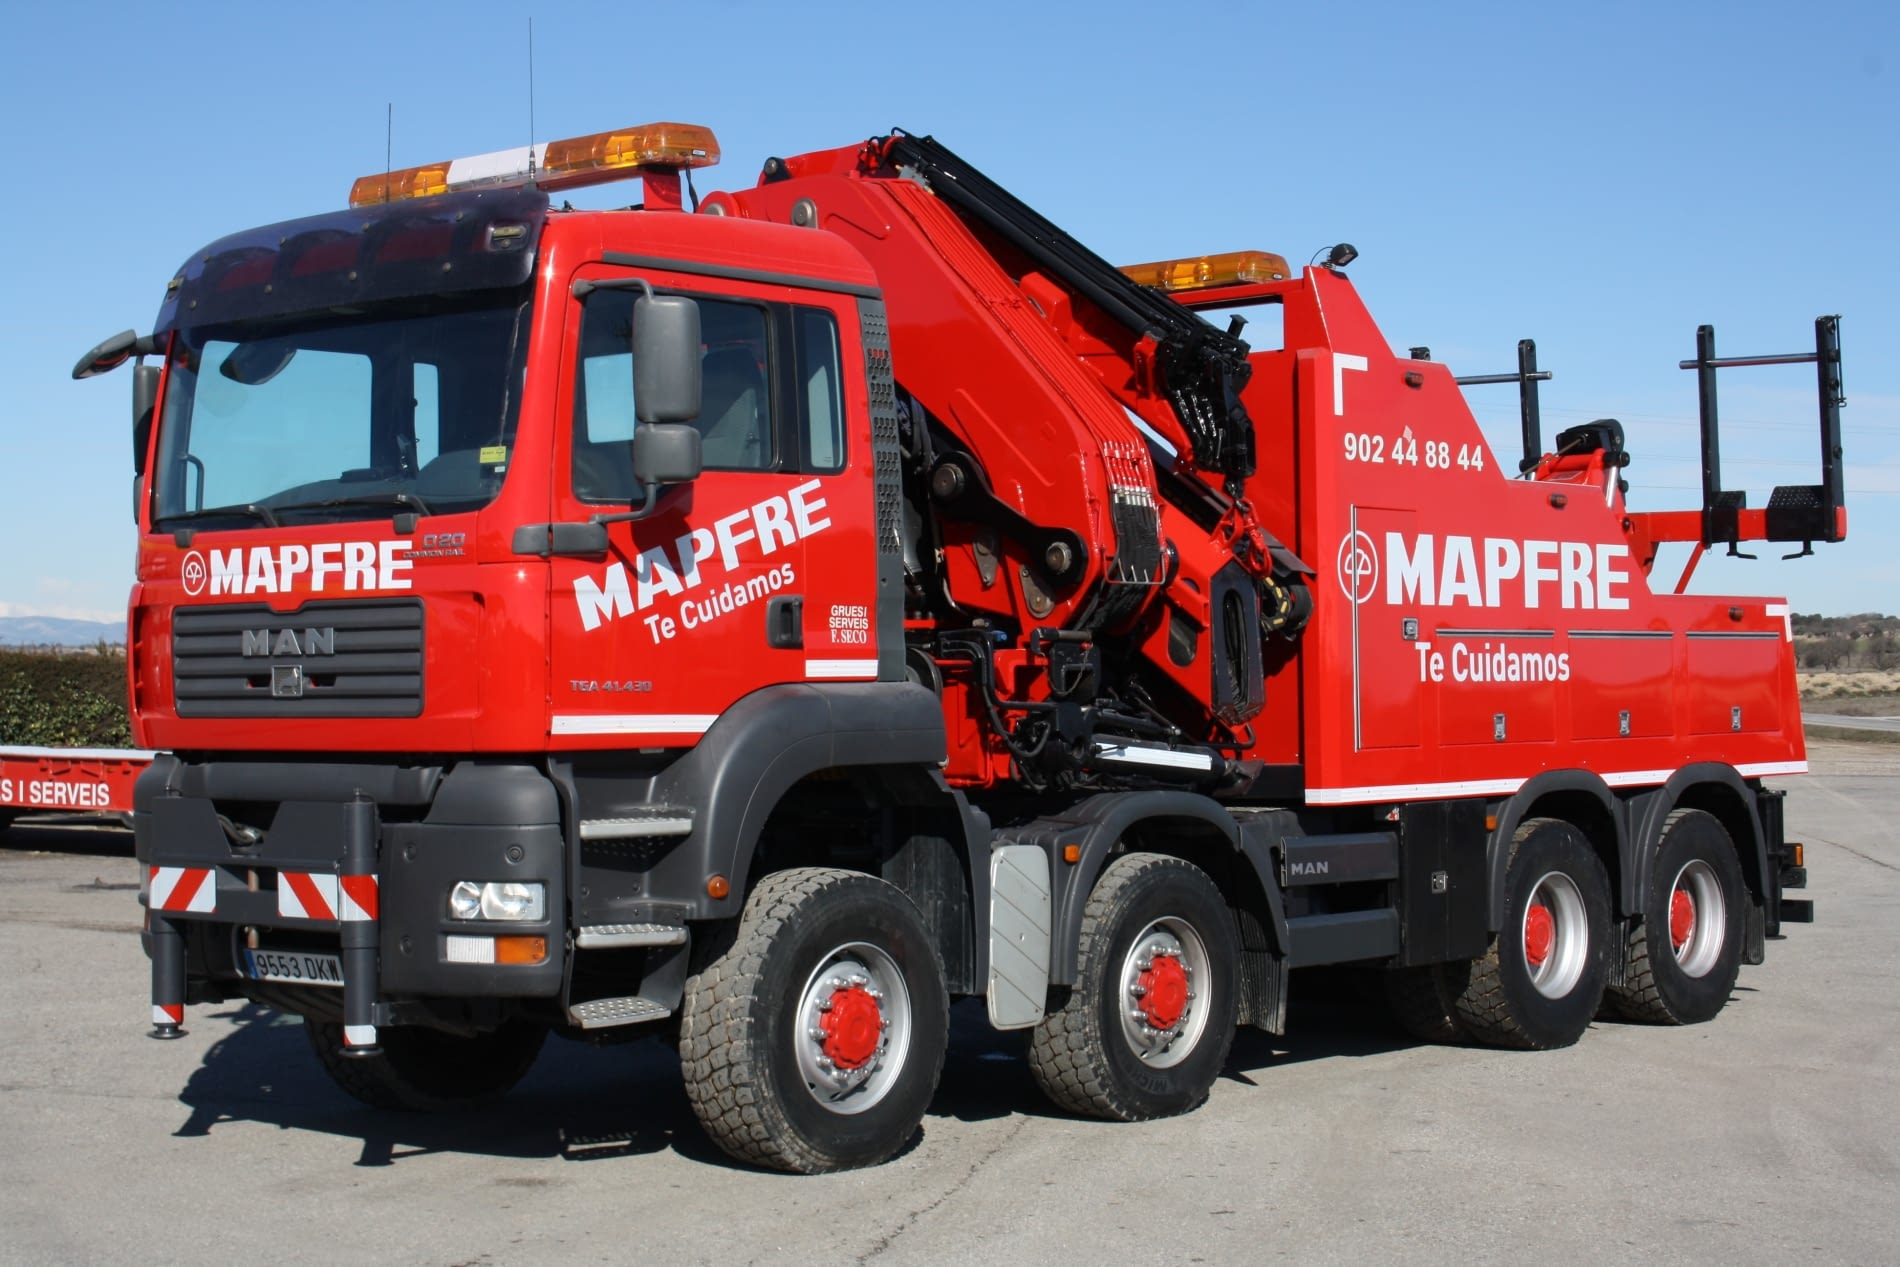 Camion MAN mapfre